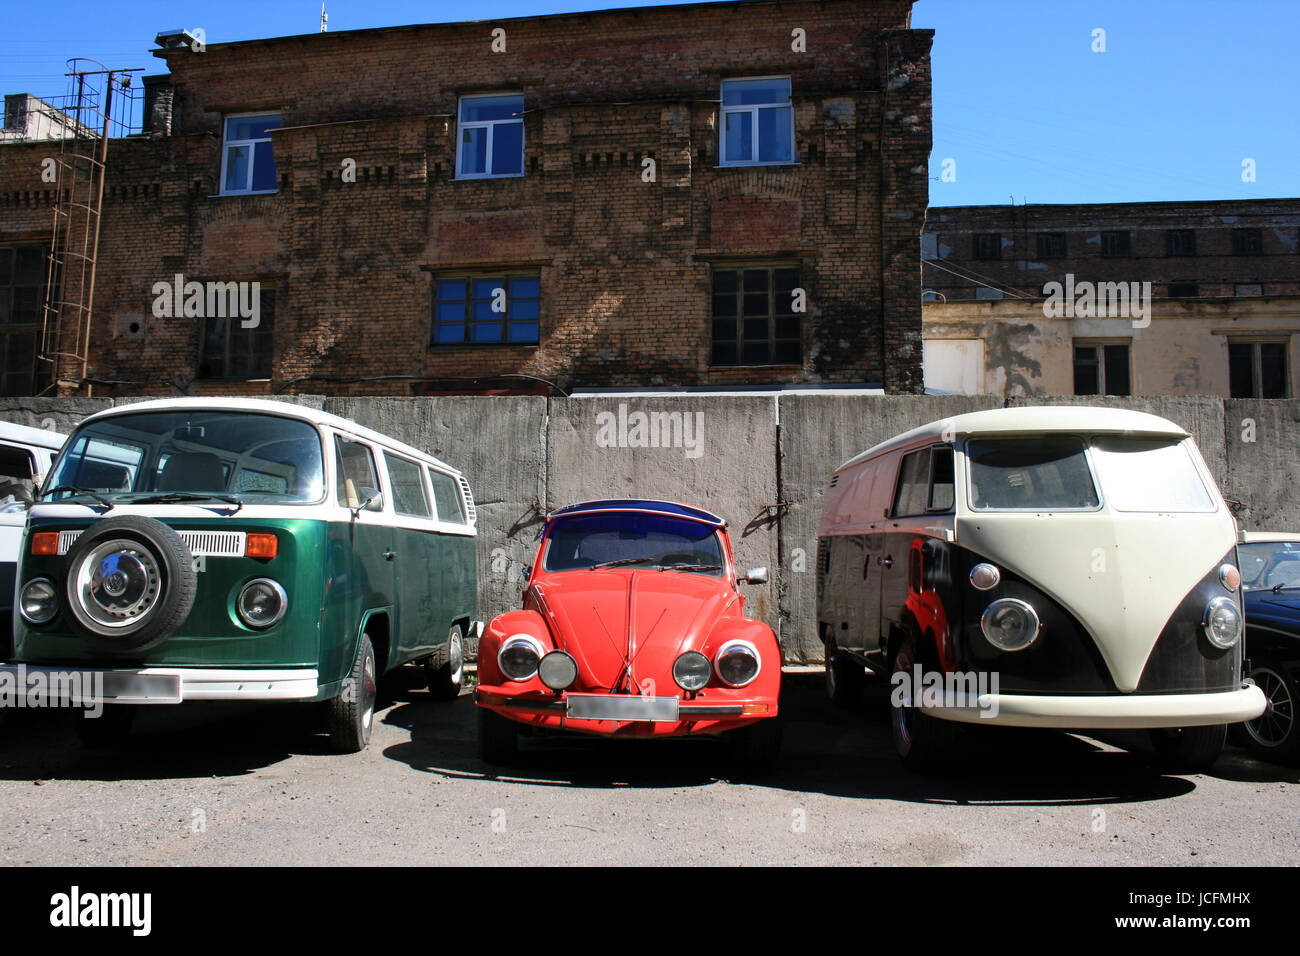 old vw´s in a backyard in russia - Stock Image